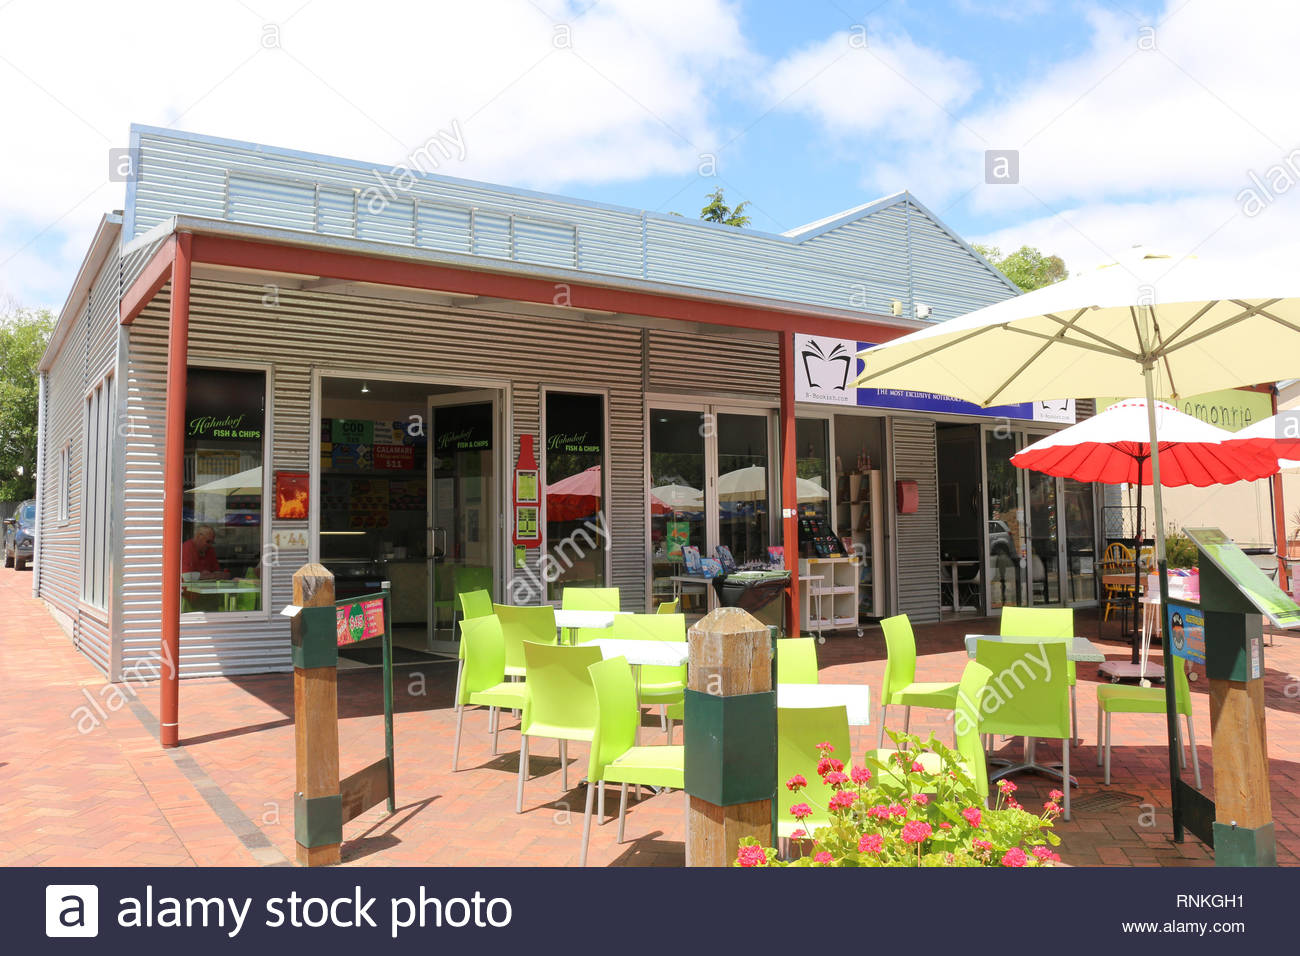 Hahndorf / Australia: Cafe in modern corrugated metal house - Stock Image